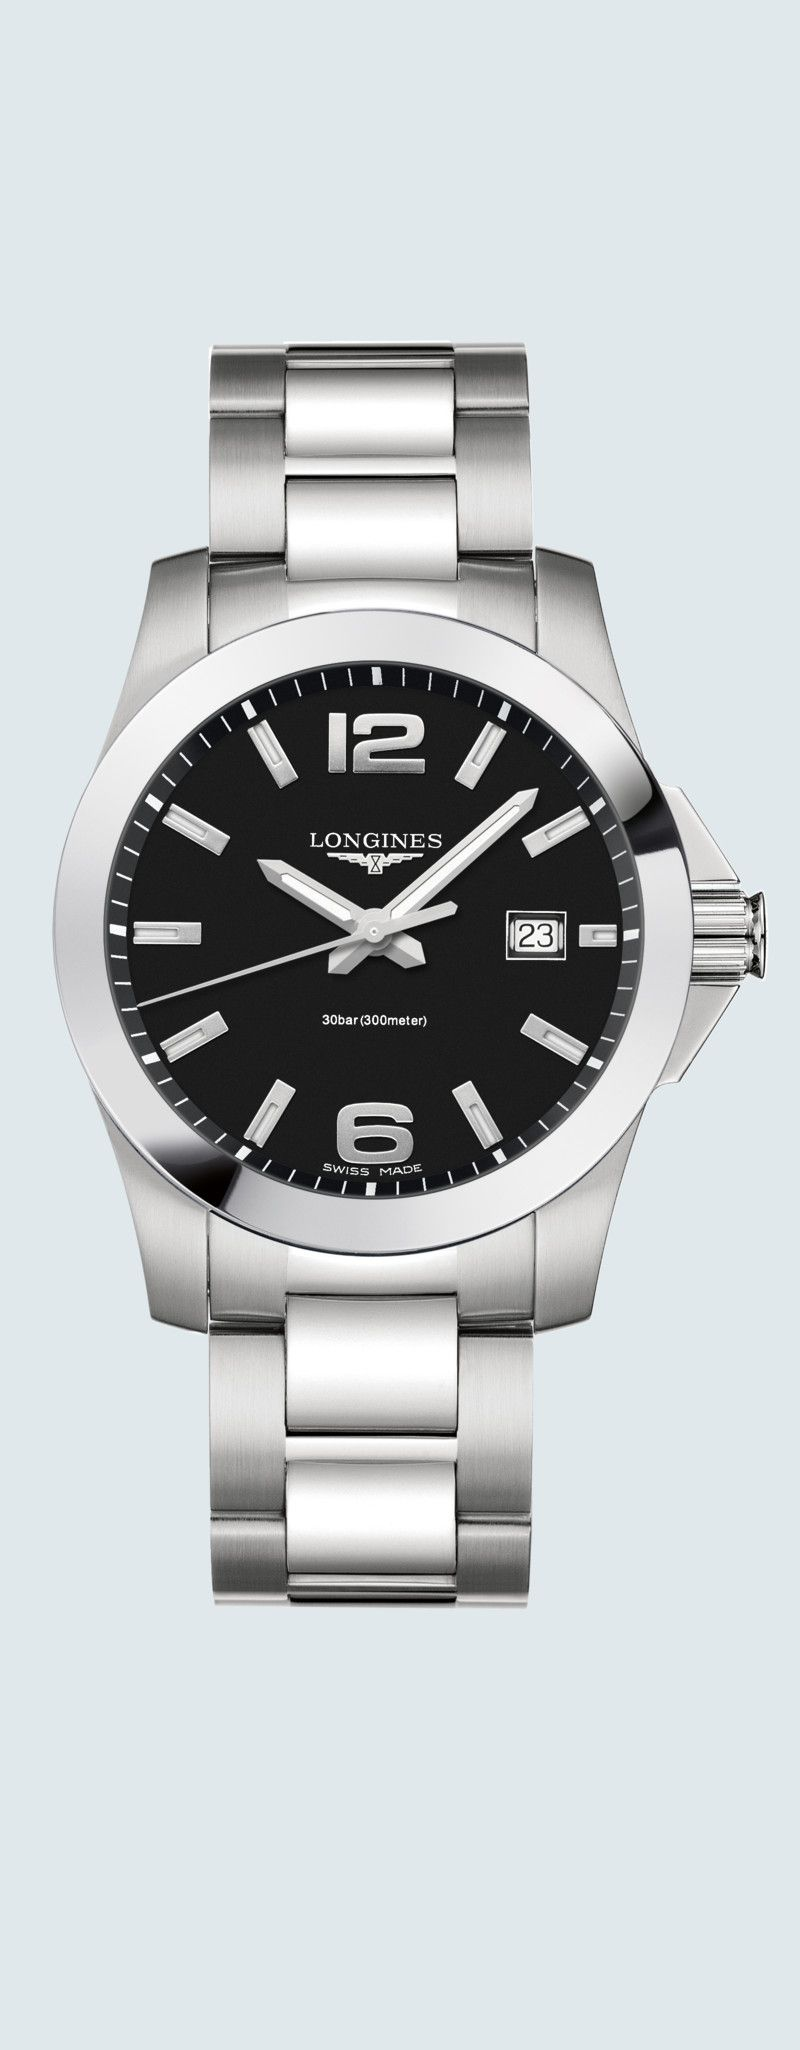 41.00 mm Stainless steel case with Black lacquered polished dial and Stainless steel strap - case z